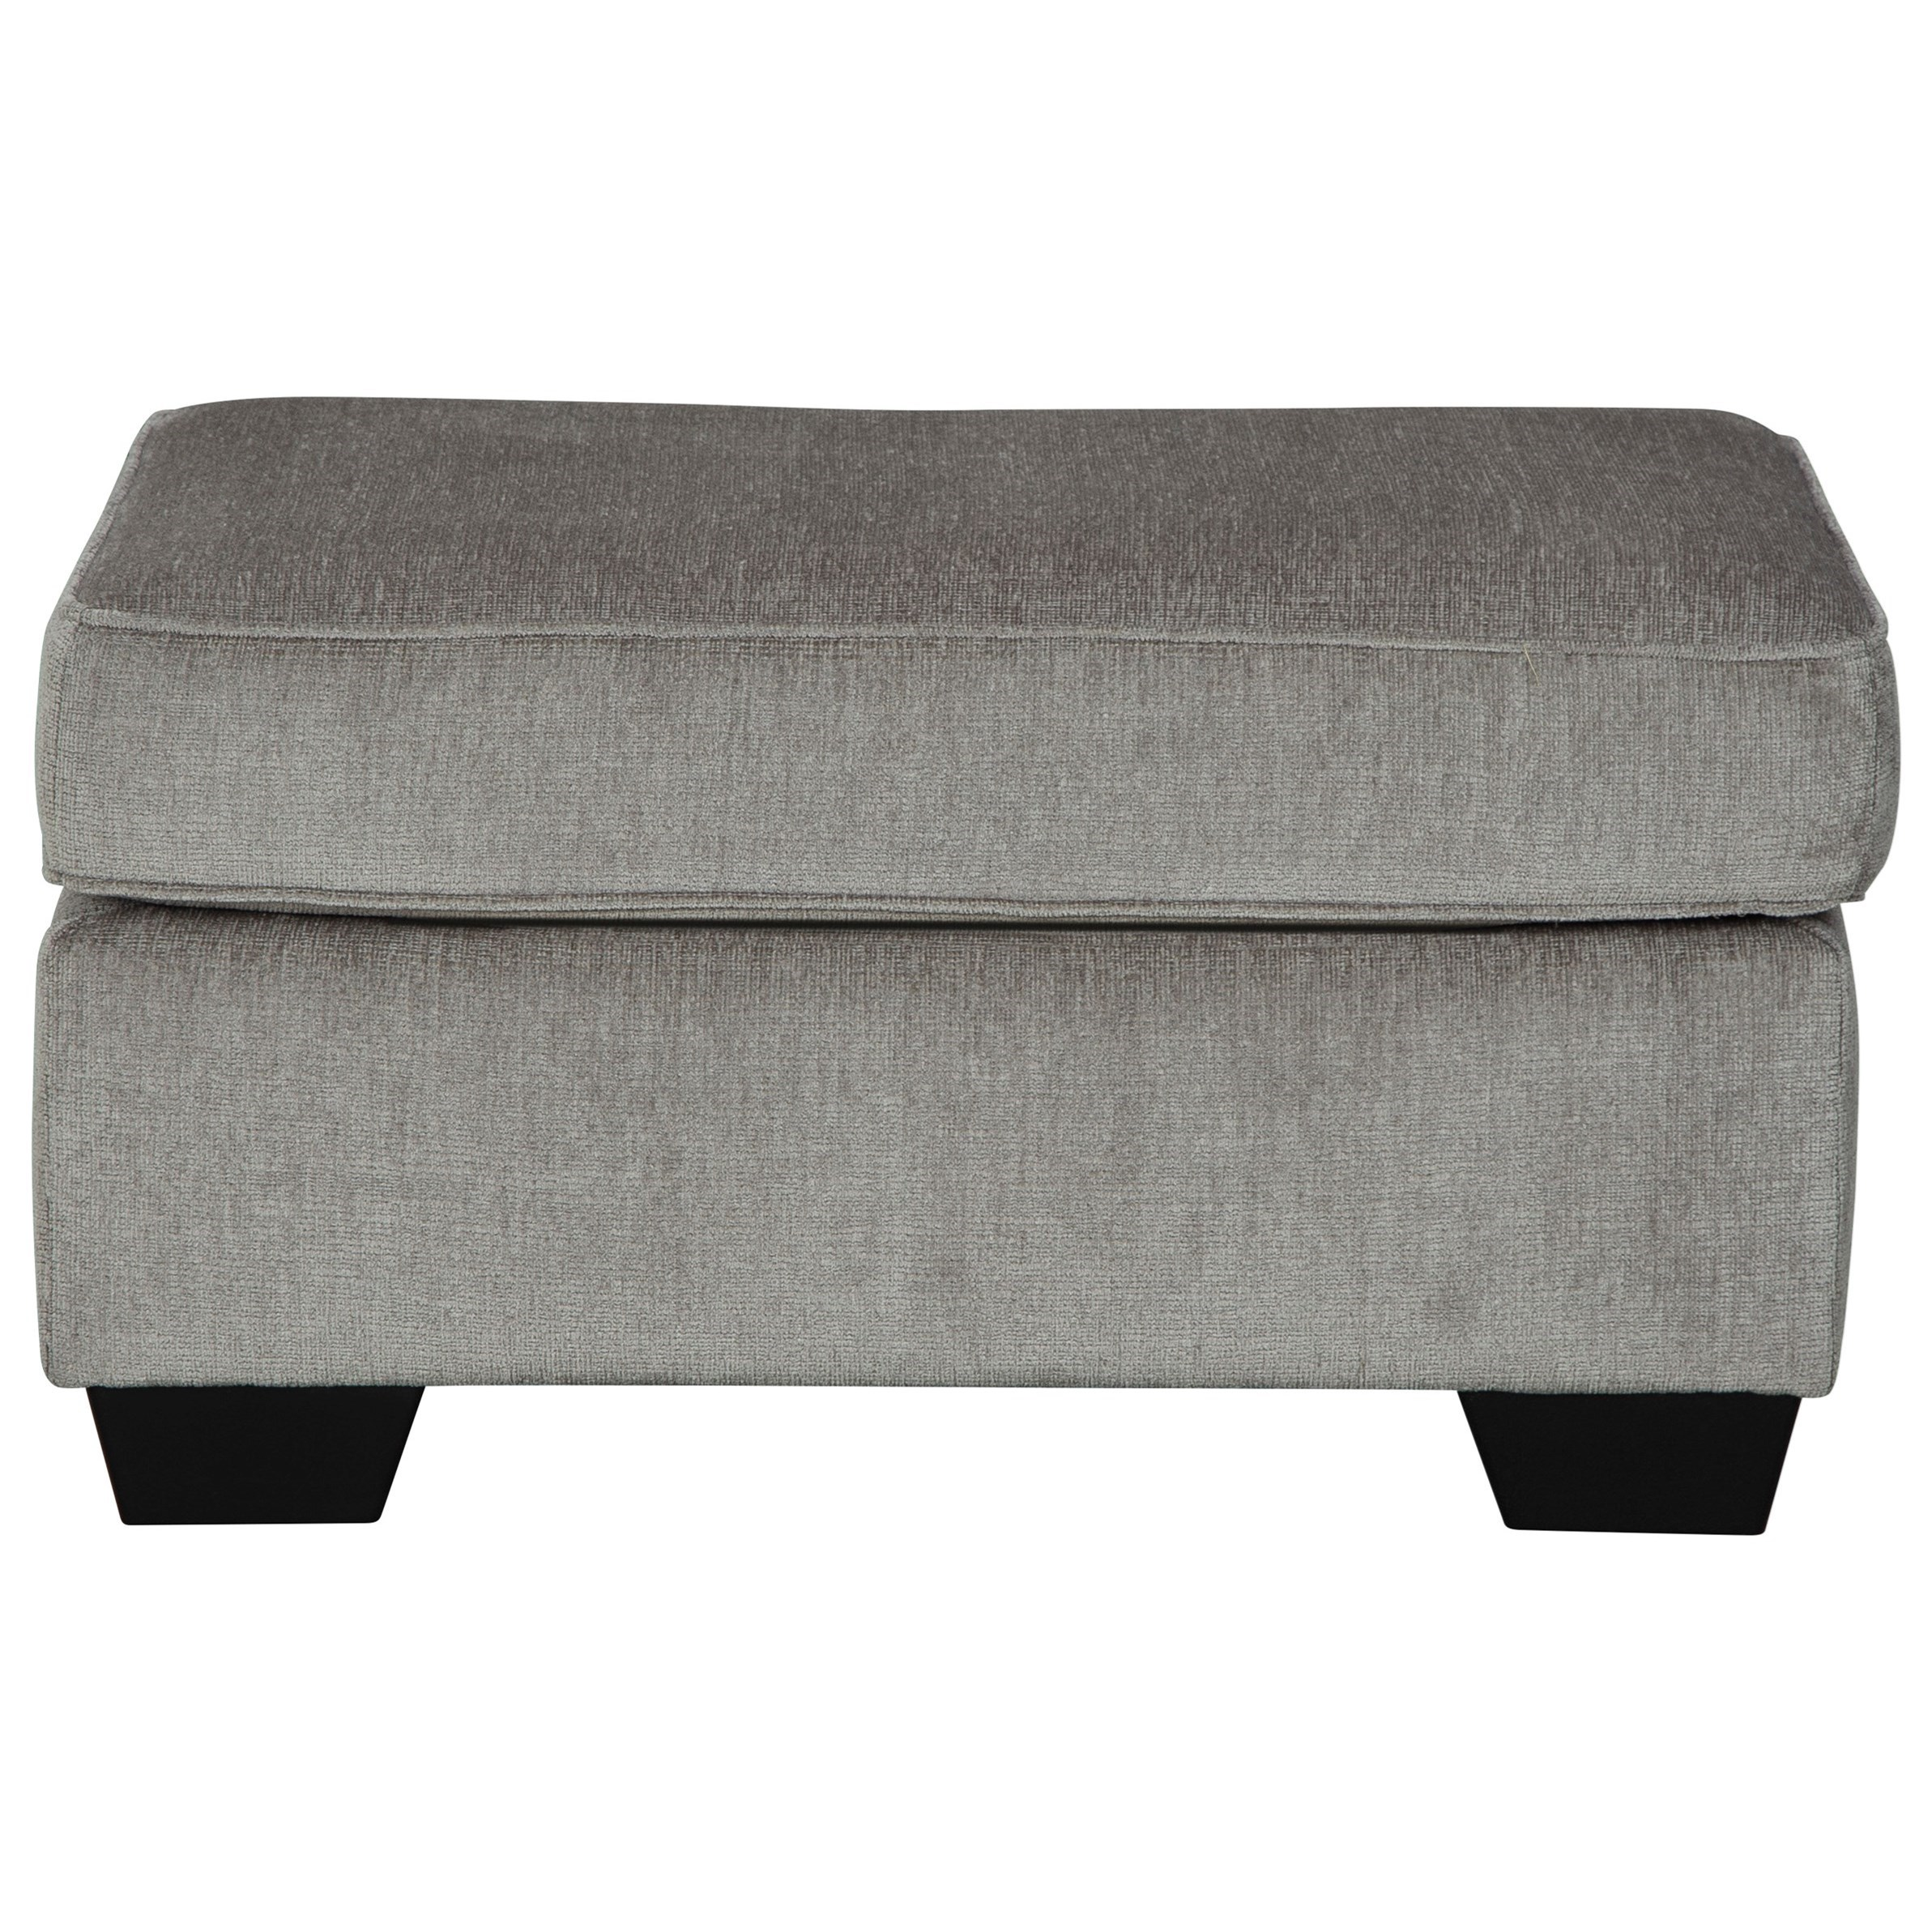 Altari Ottoman by Ashley (Signature Design) at Johnny Janosik